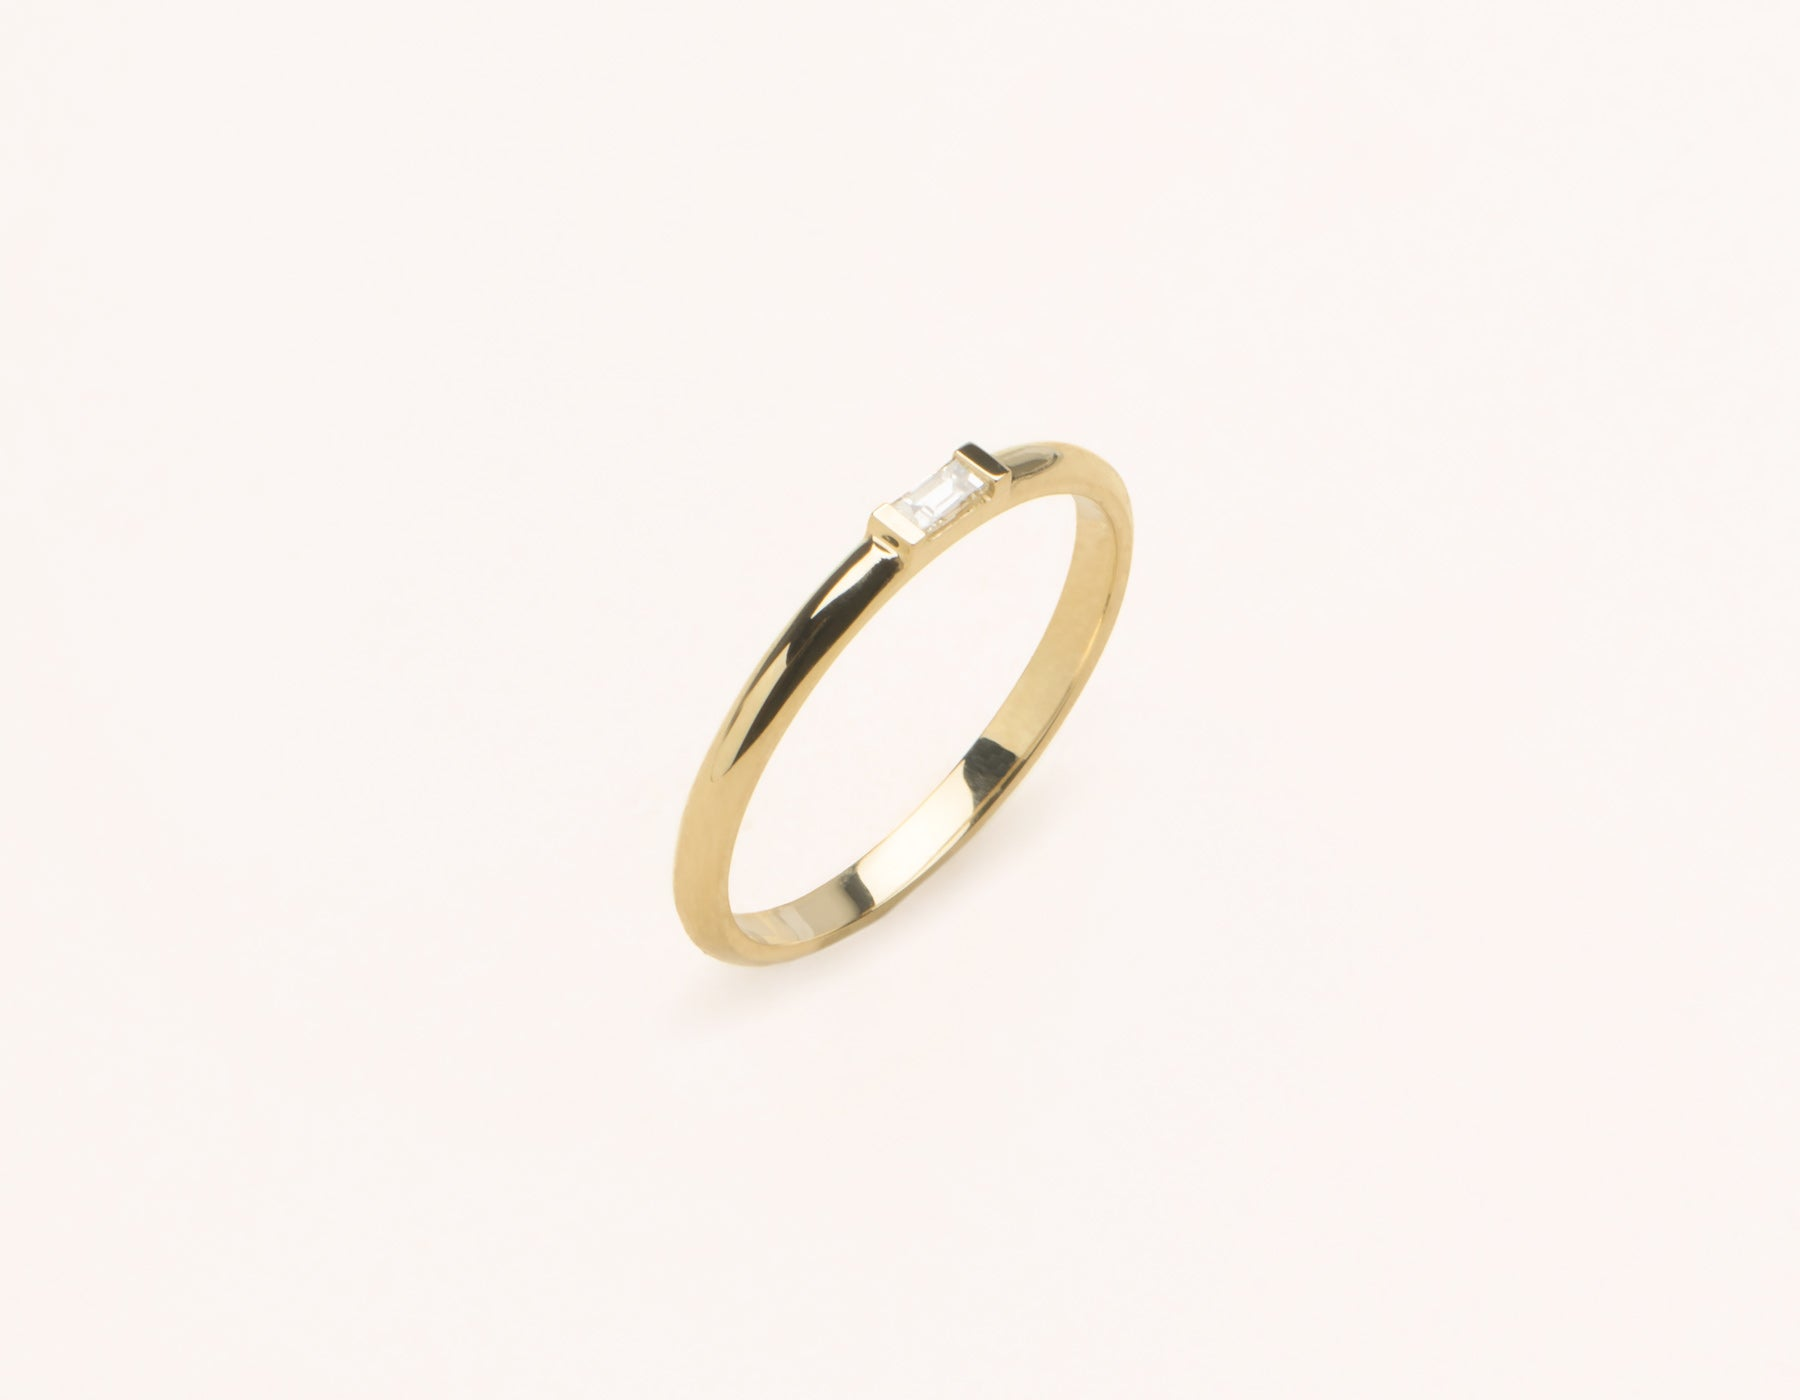 Simple stylish 14k Solid gold Baguette Diamond Ring with streamlined channel setting by Vrai & Oro, 14K Yellow Gold